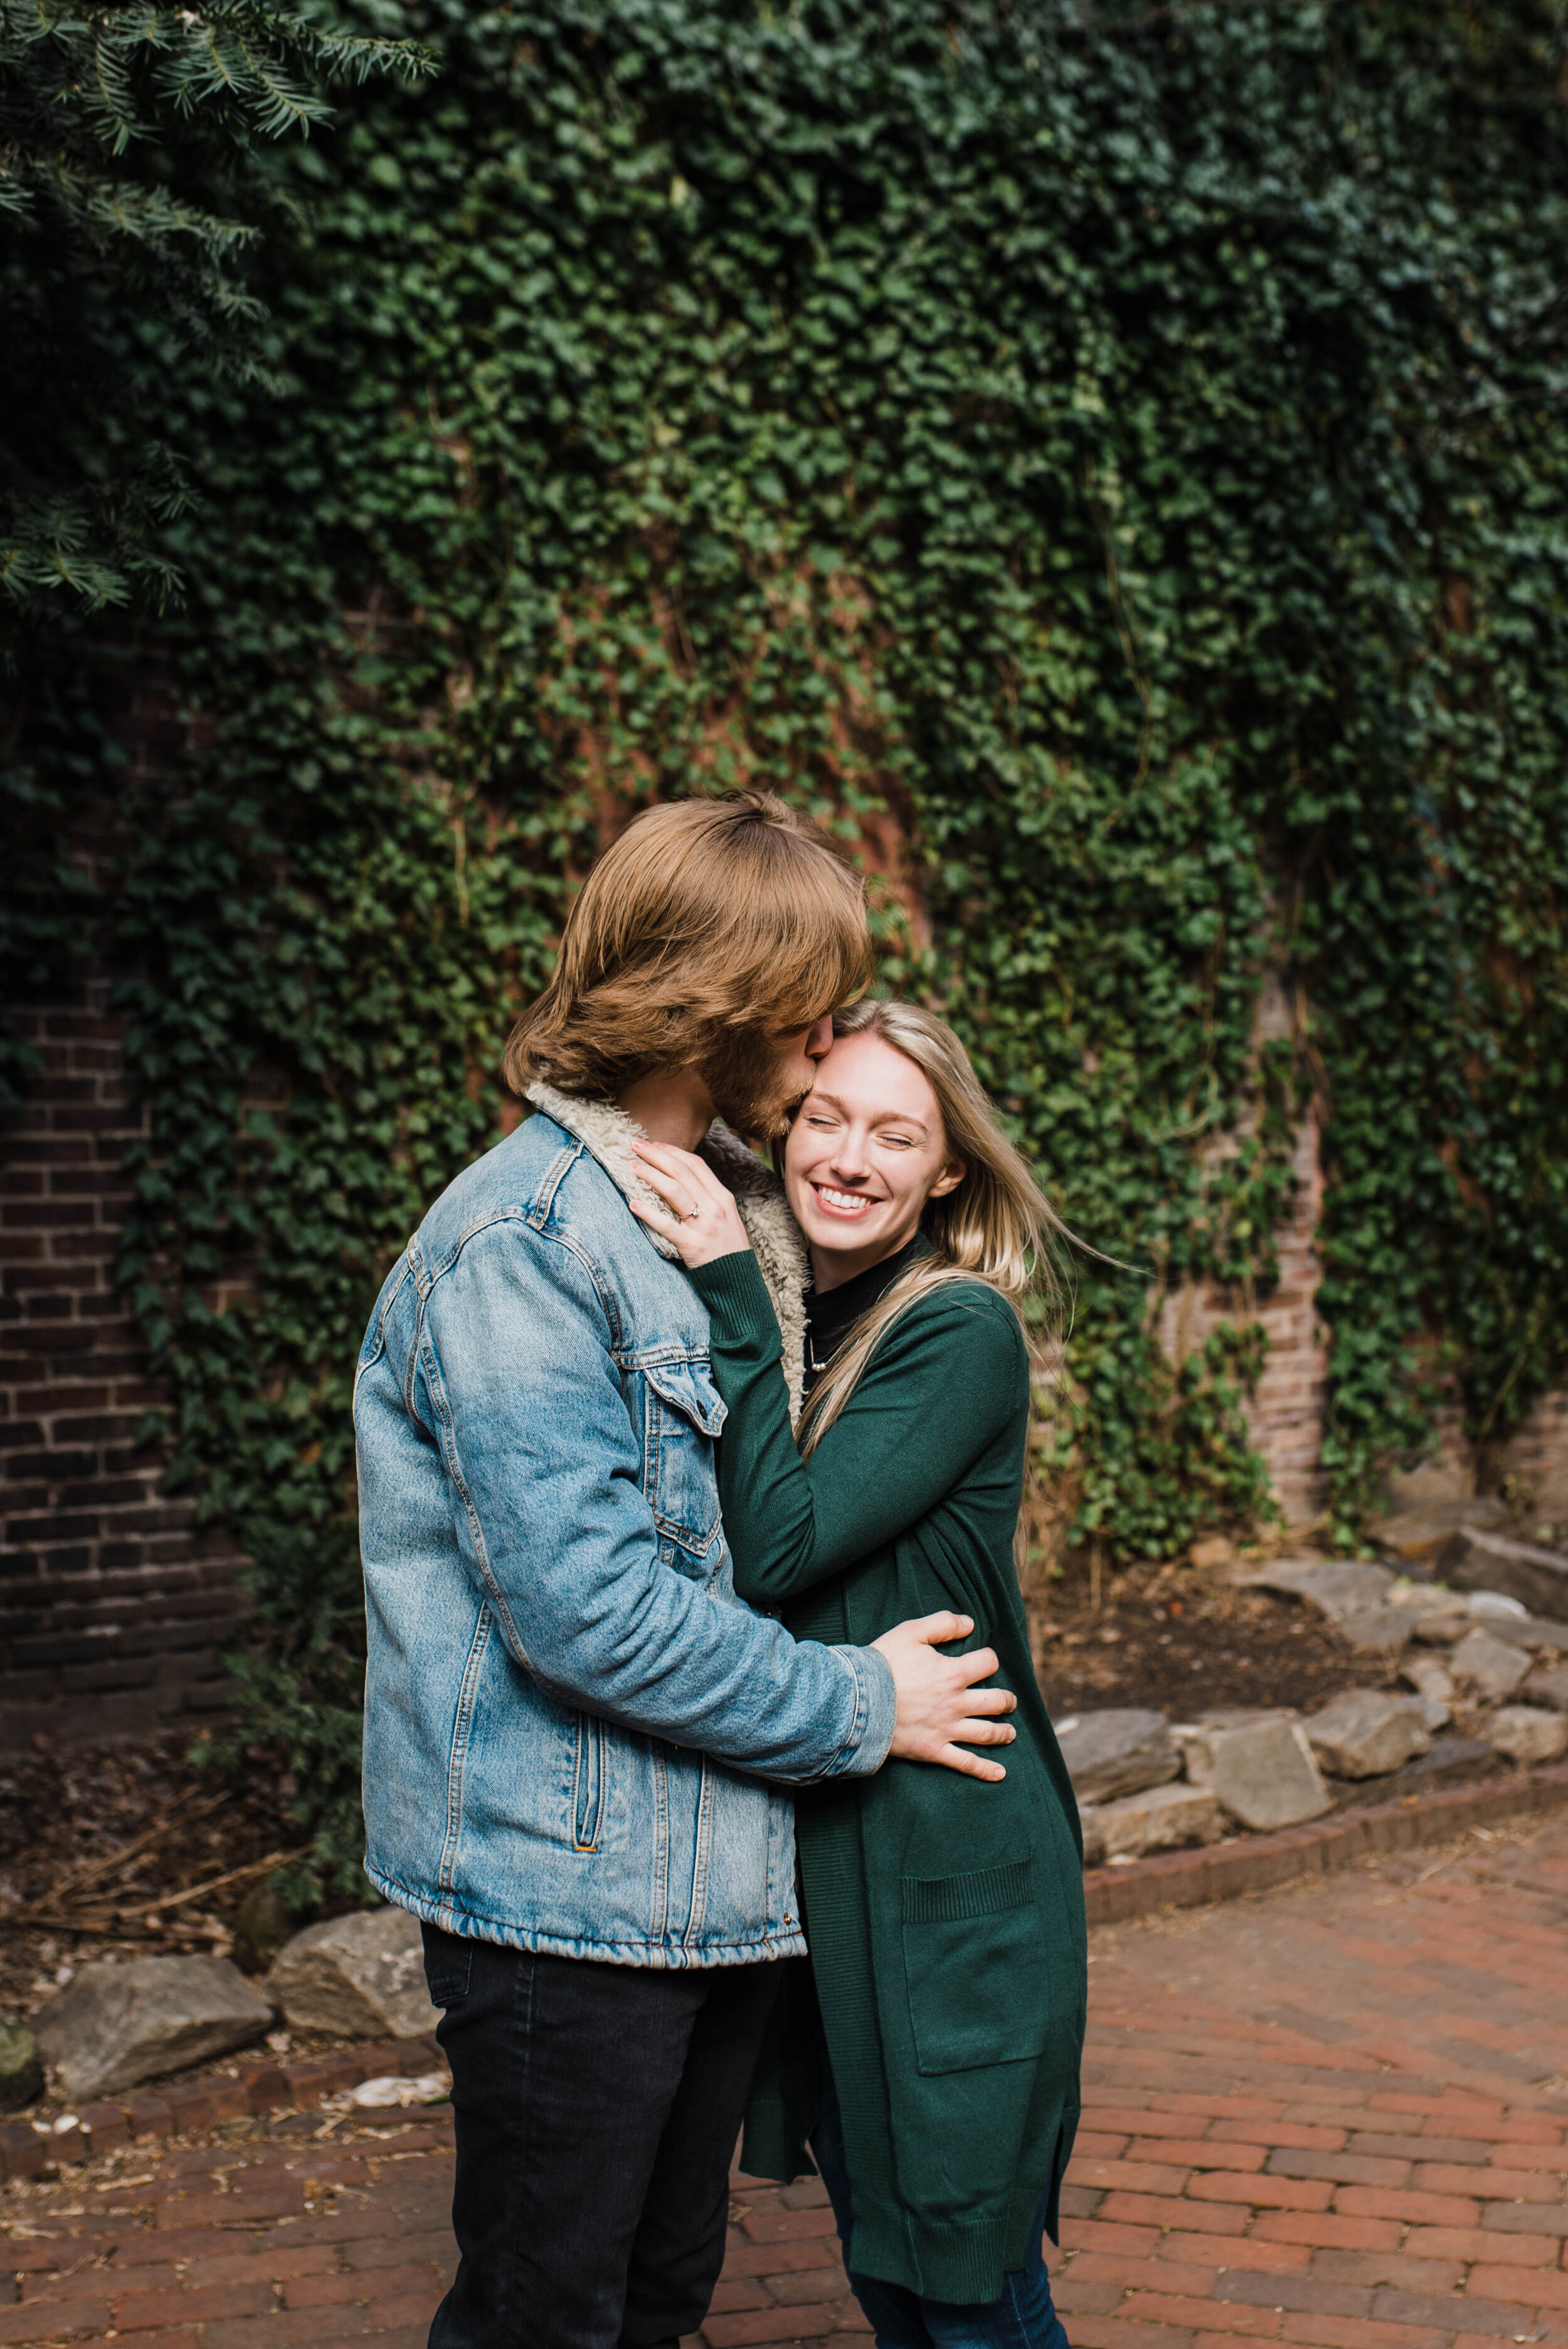 Couple hugging with ivy in the background.